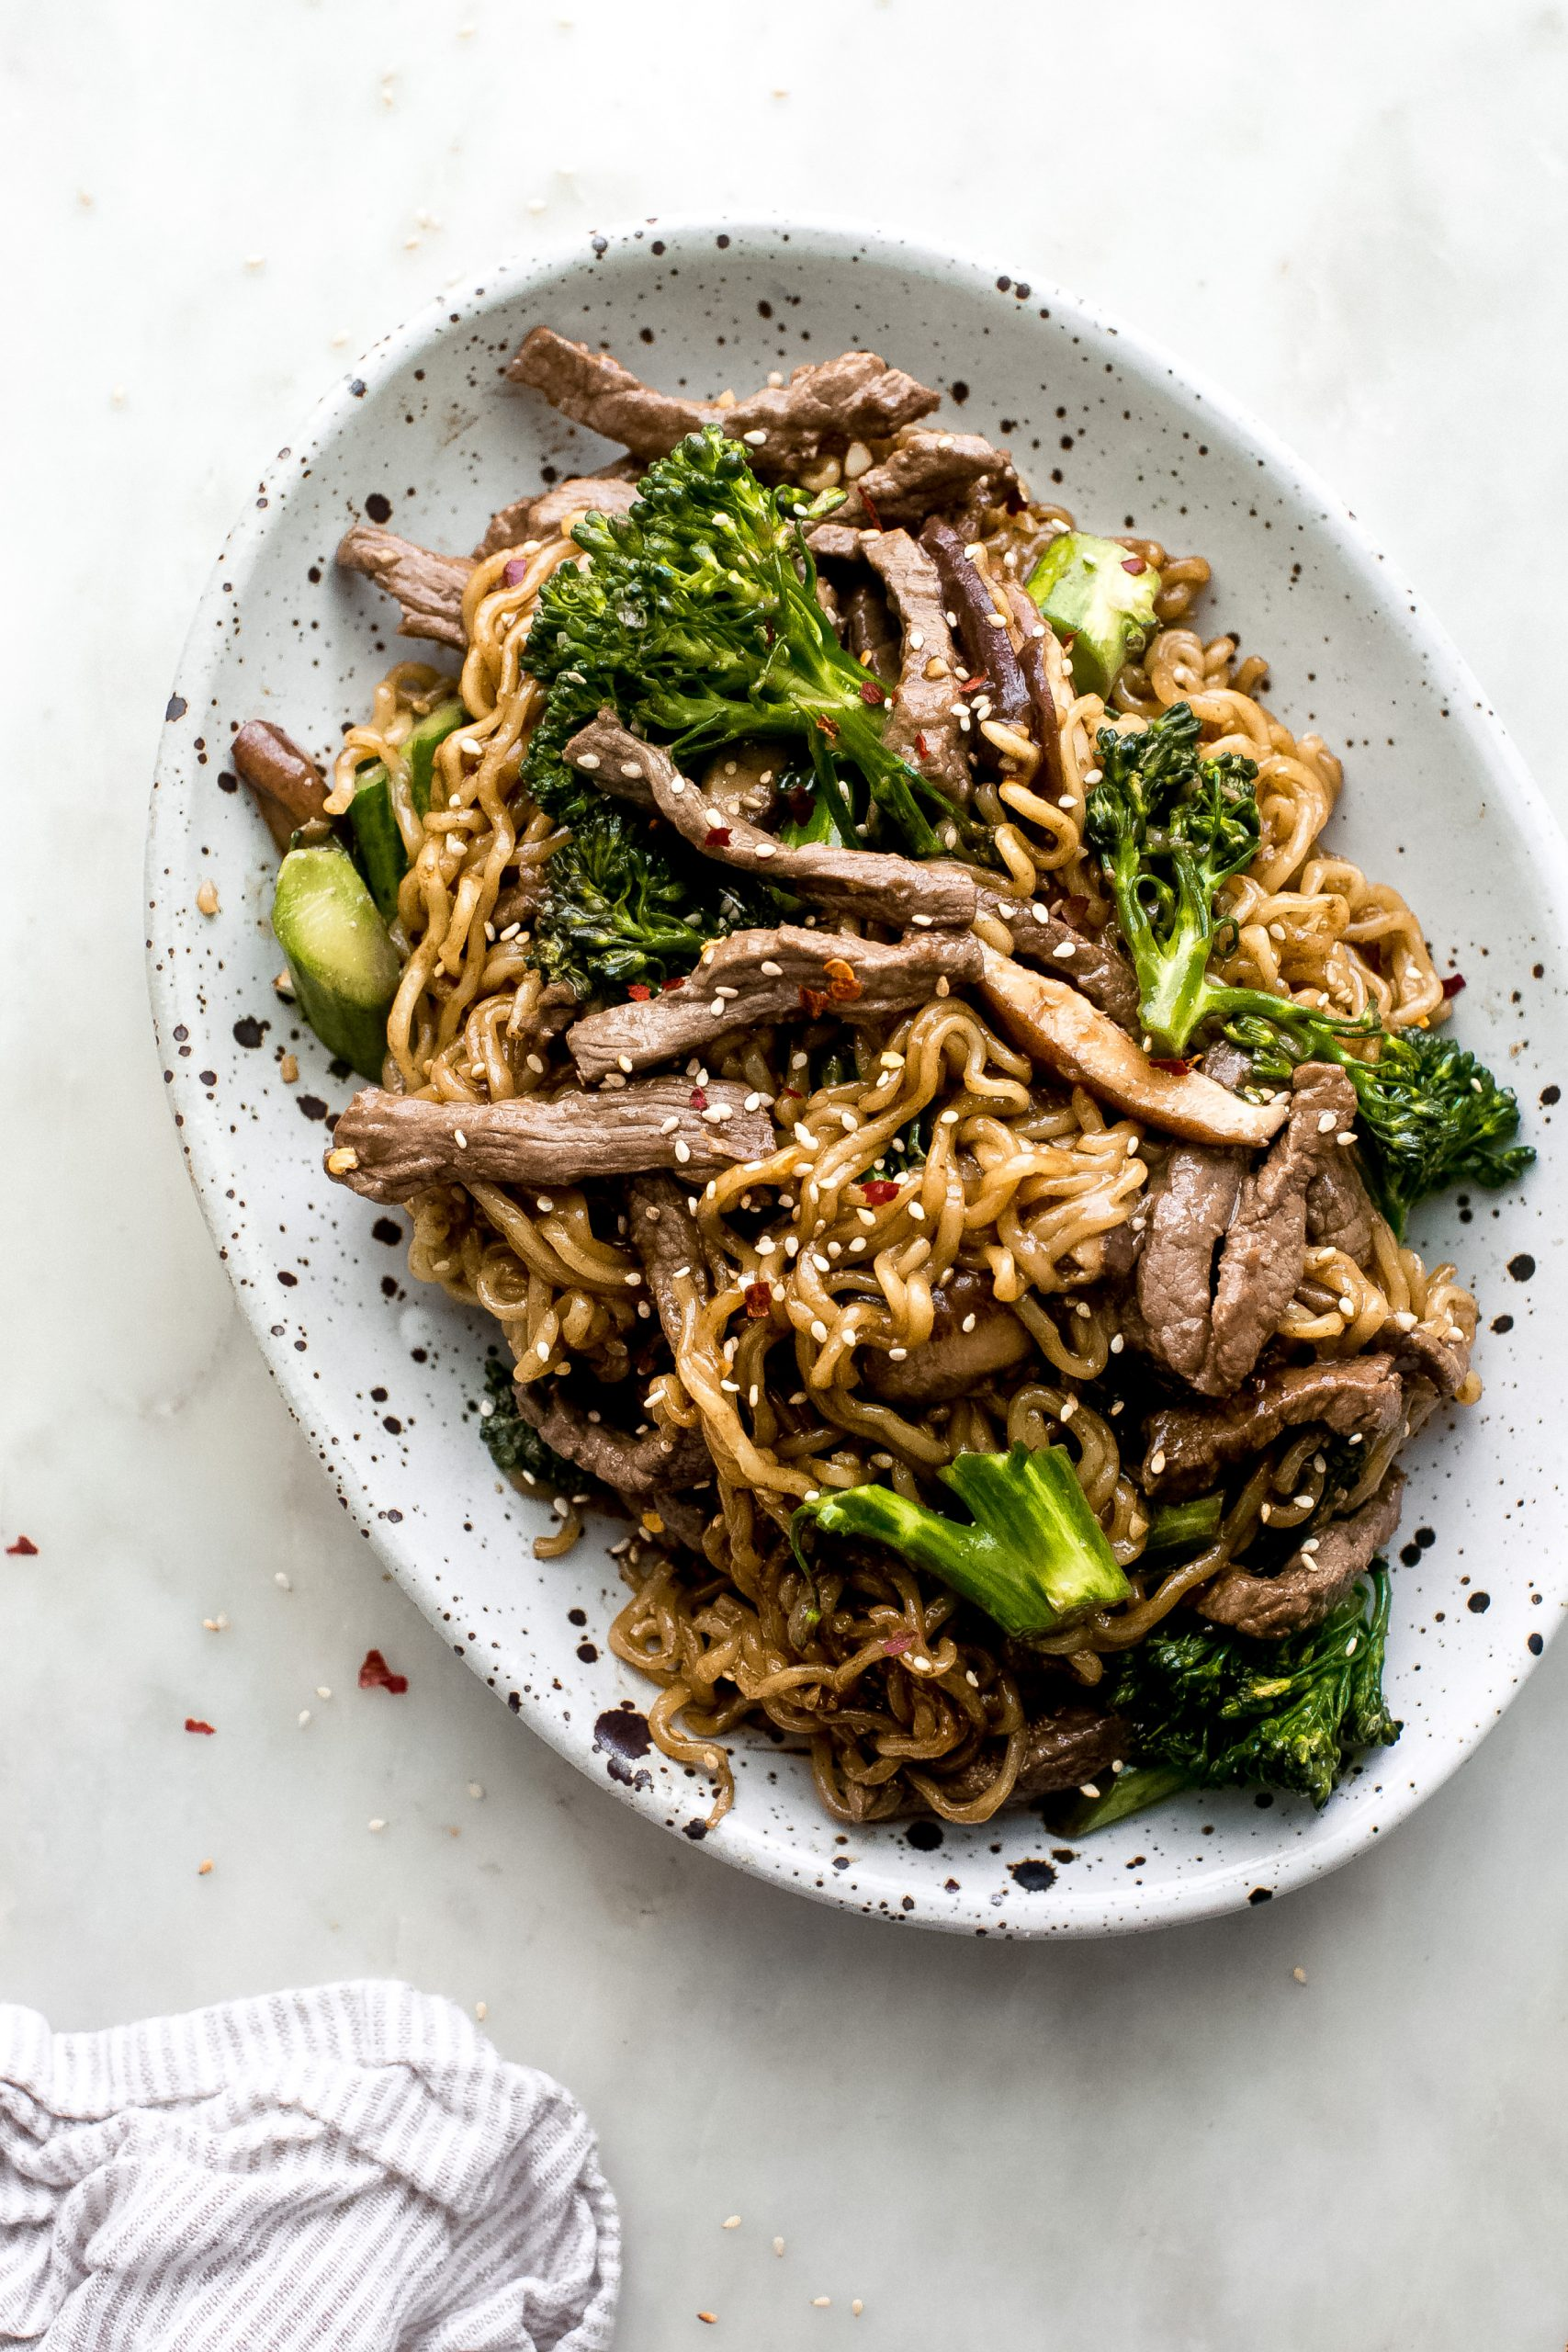 oval speckled plate with ramen noodles that were cooked with broccolini and strips of sautéed beef